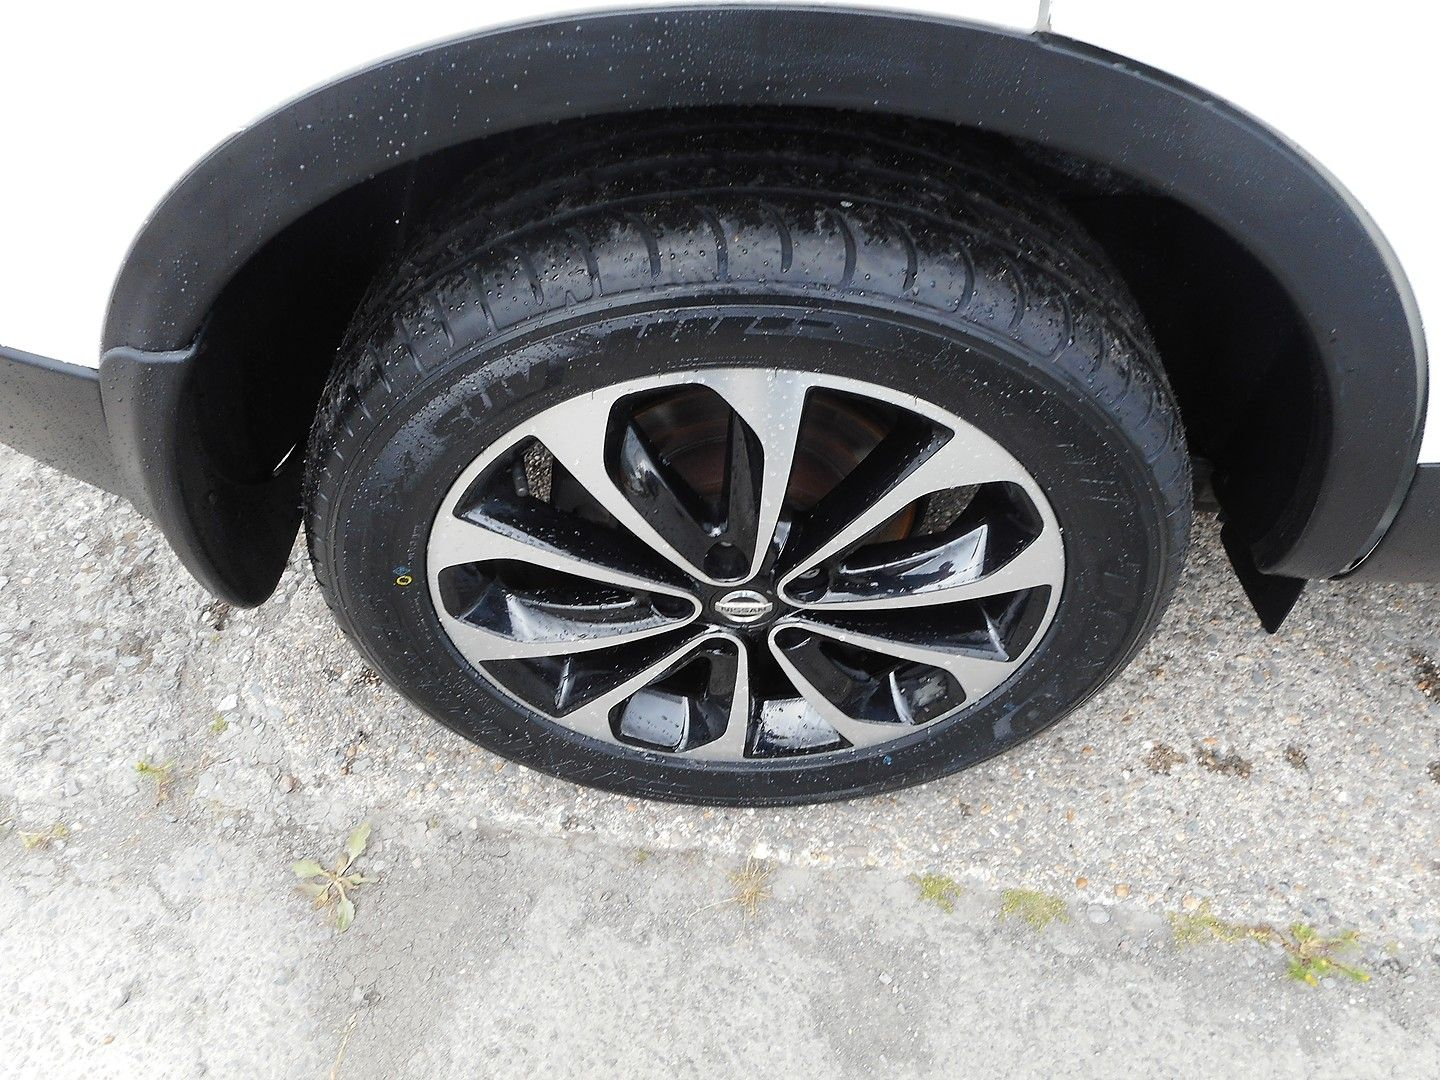 NISSAN QASHQAI 360 1.5 dCi 7 SEATER (2013) - Picture 6